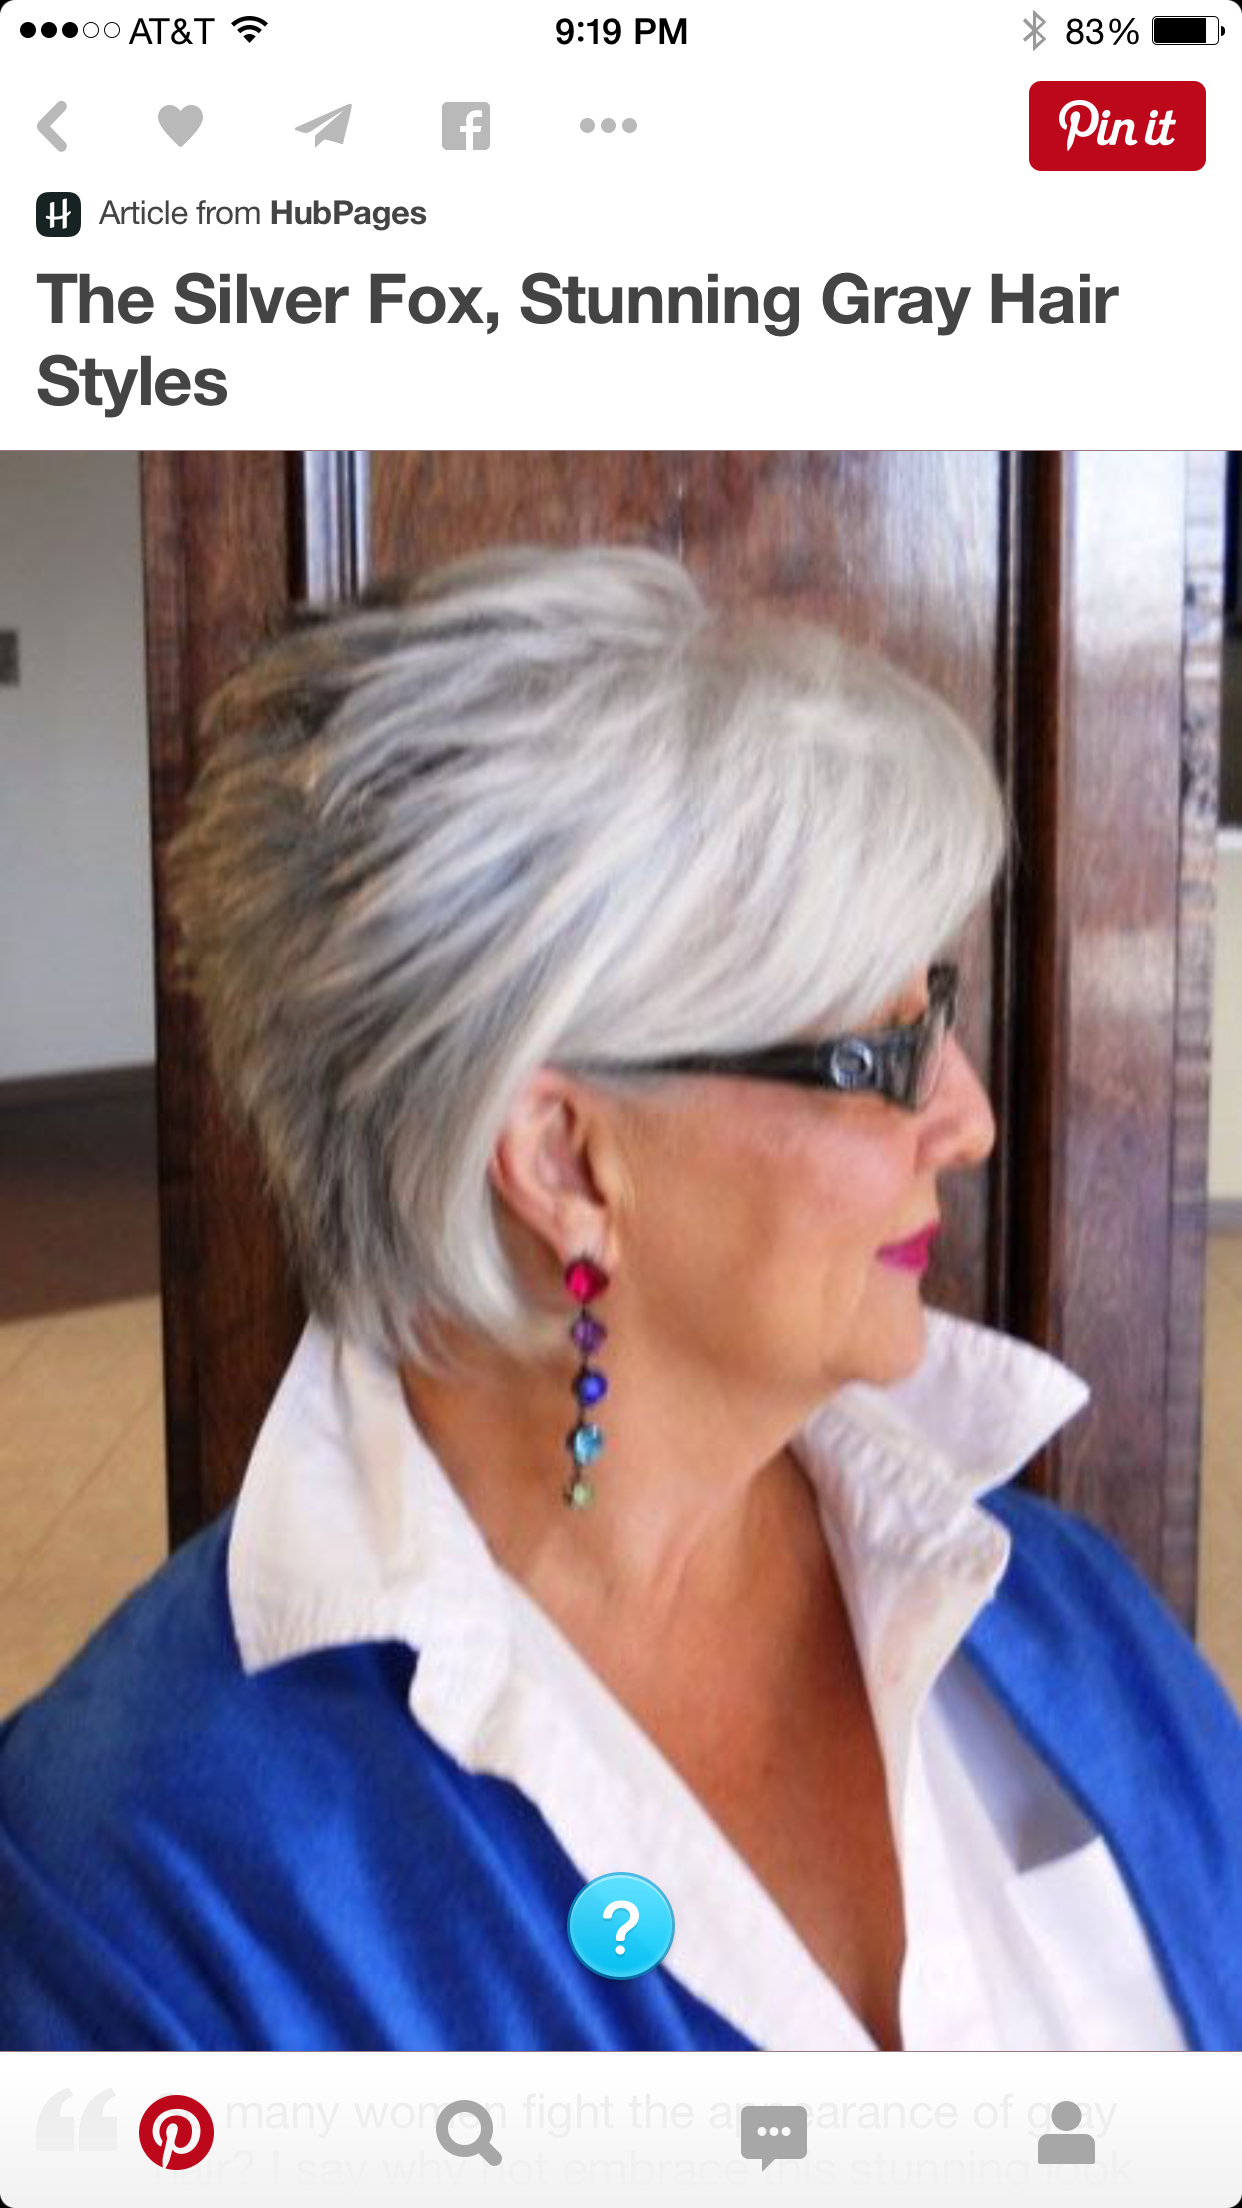 the silver fox, stunning grey hair style. a bit longer than some